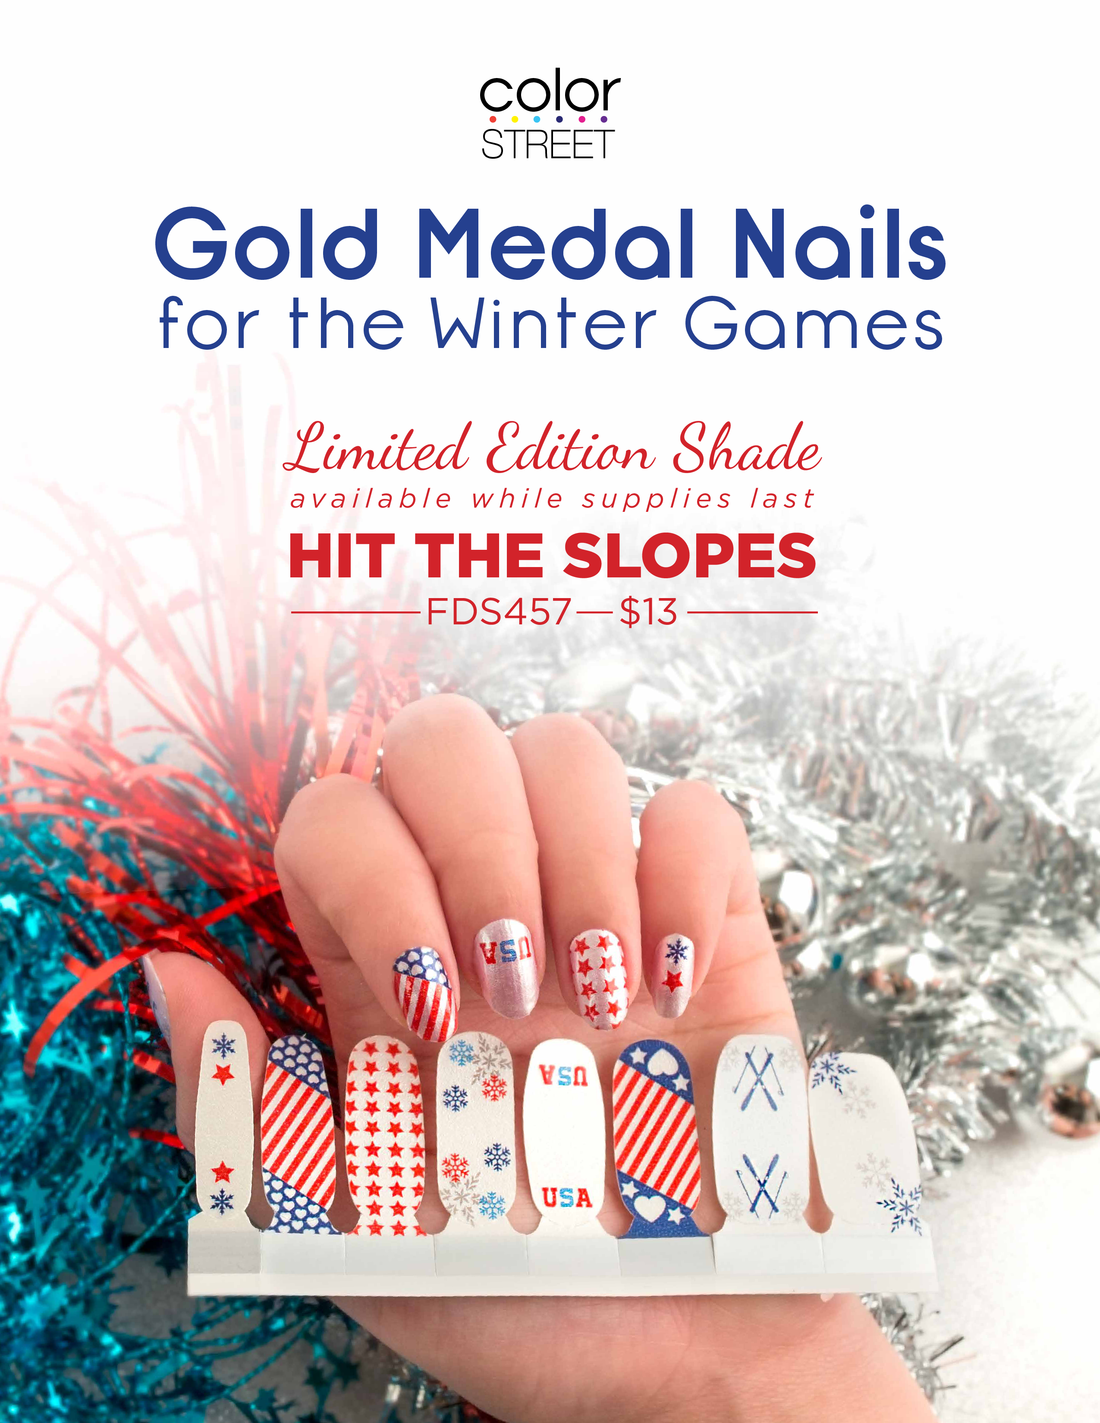 Color Street Releases Hit the Slopes Nails - Direct Sales and Home ...